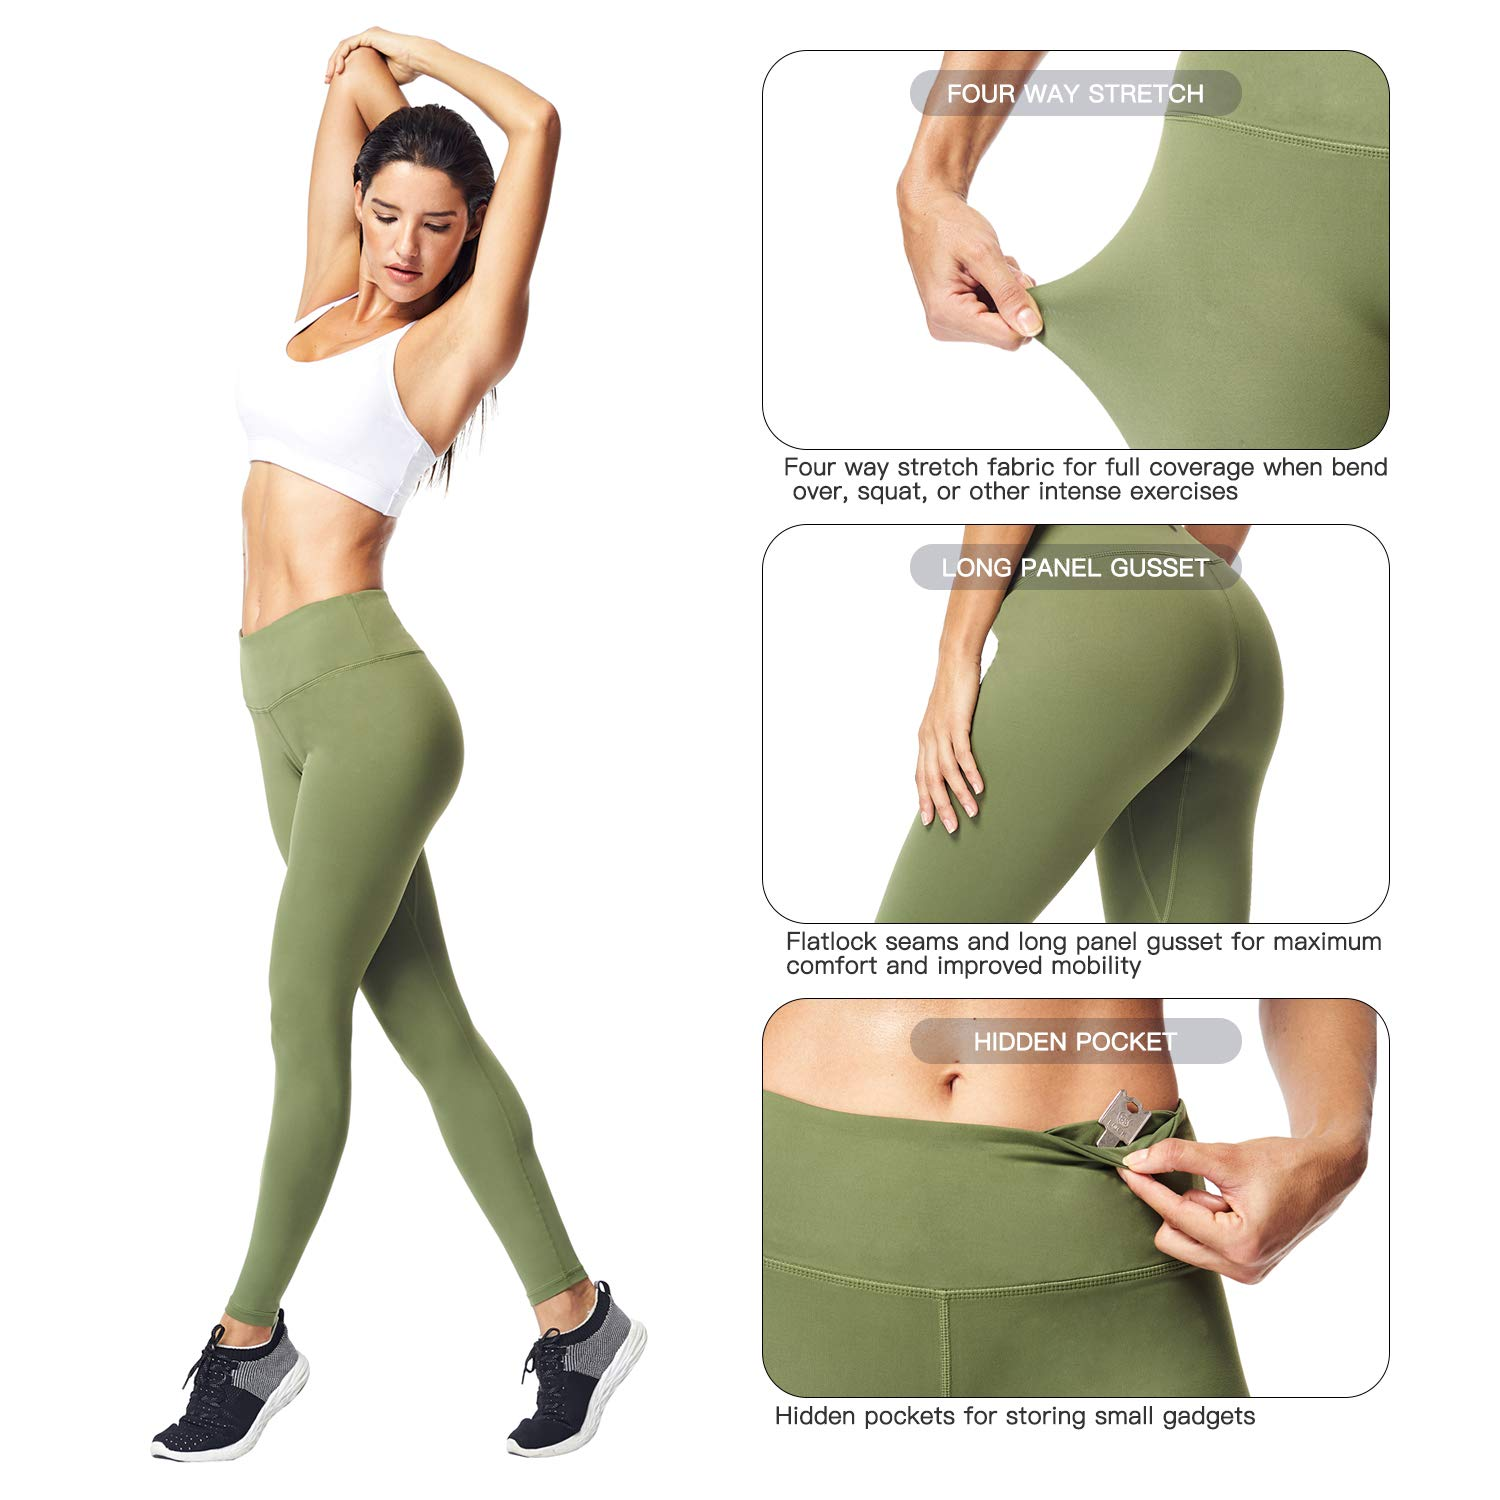 Matymats Women\'s Tummy Control Yoga Leggings High Waist Non See Through Running Workout Pants with Pockets